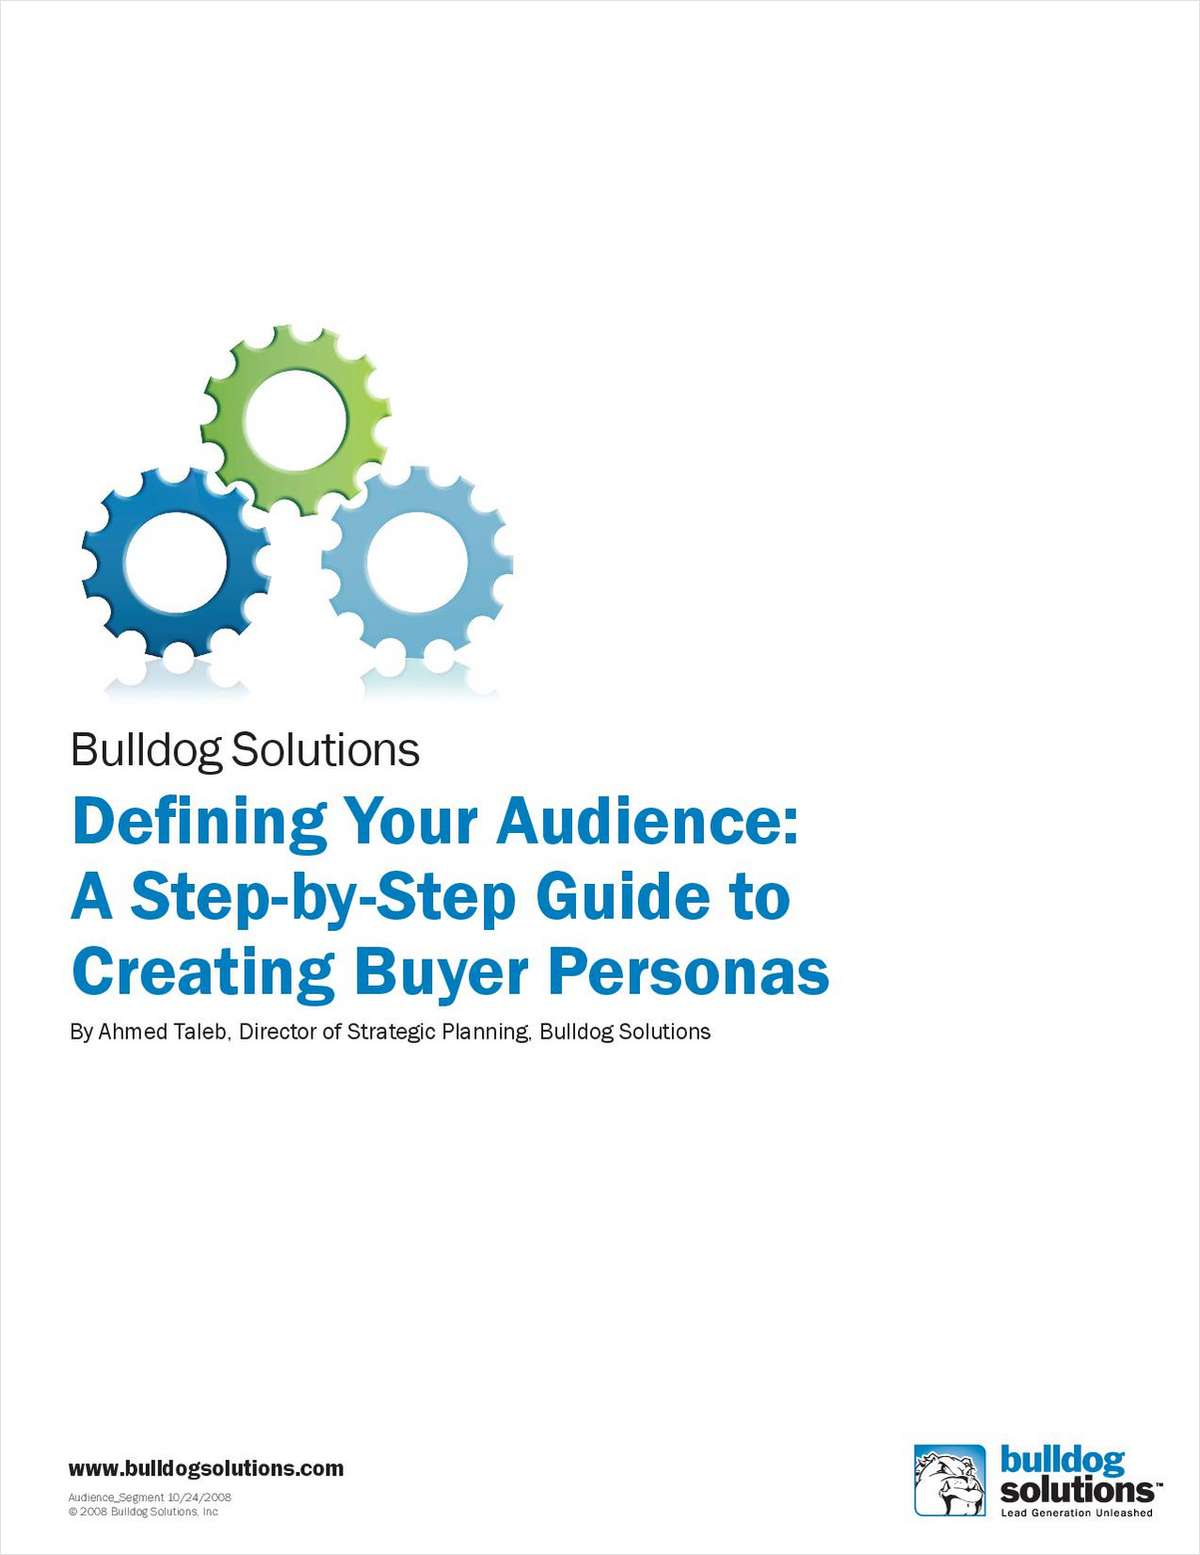 Defining Your Audience: A Step-by-Step Guide to Creating Buyer Personas